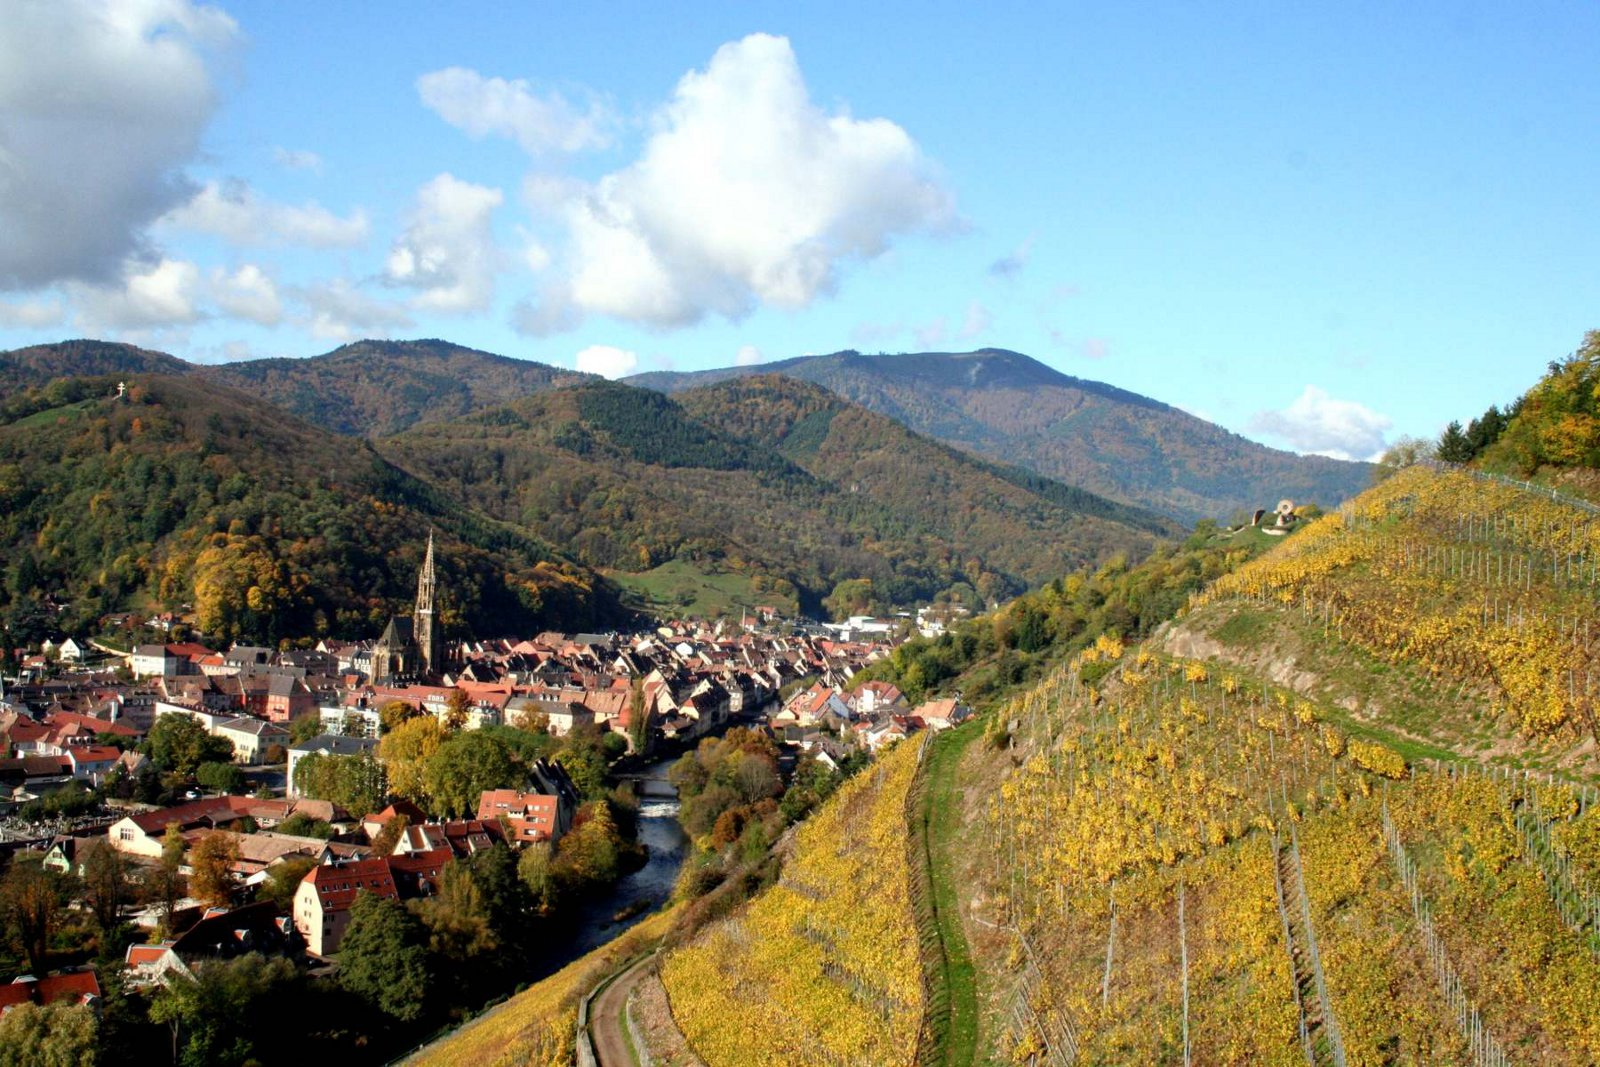 https://apps.tourisme-alsace.info/photos/thann/photos/239003506_1.jpg